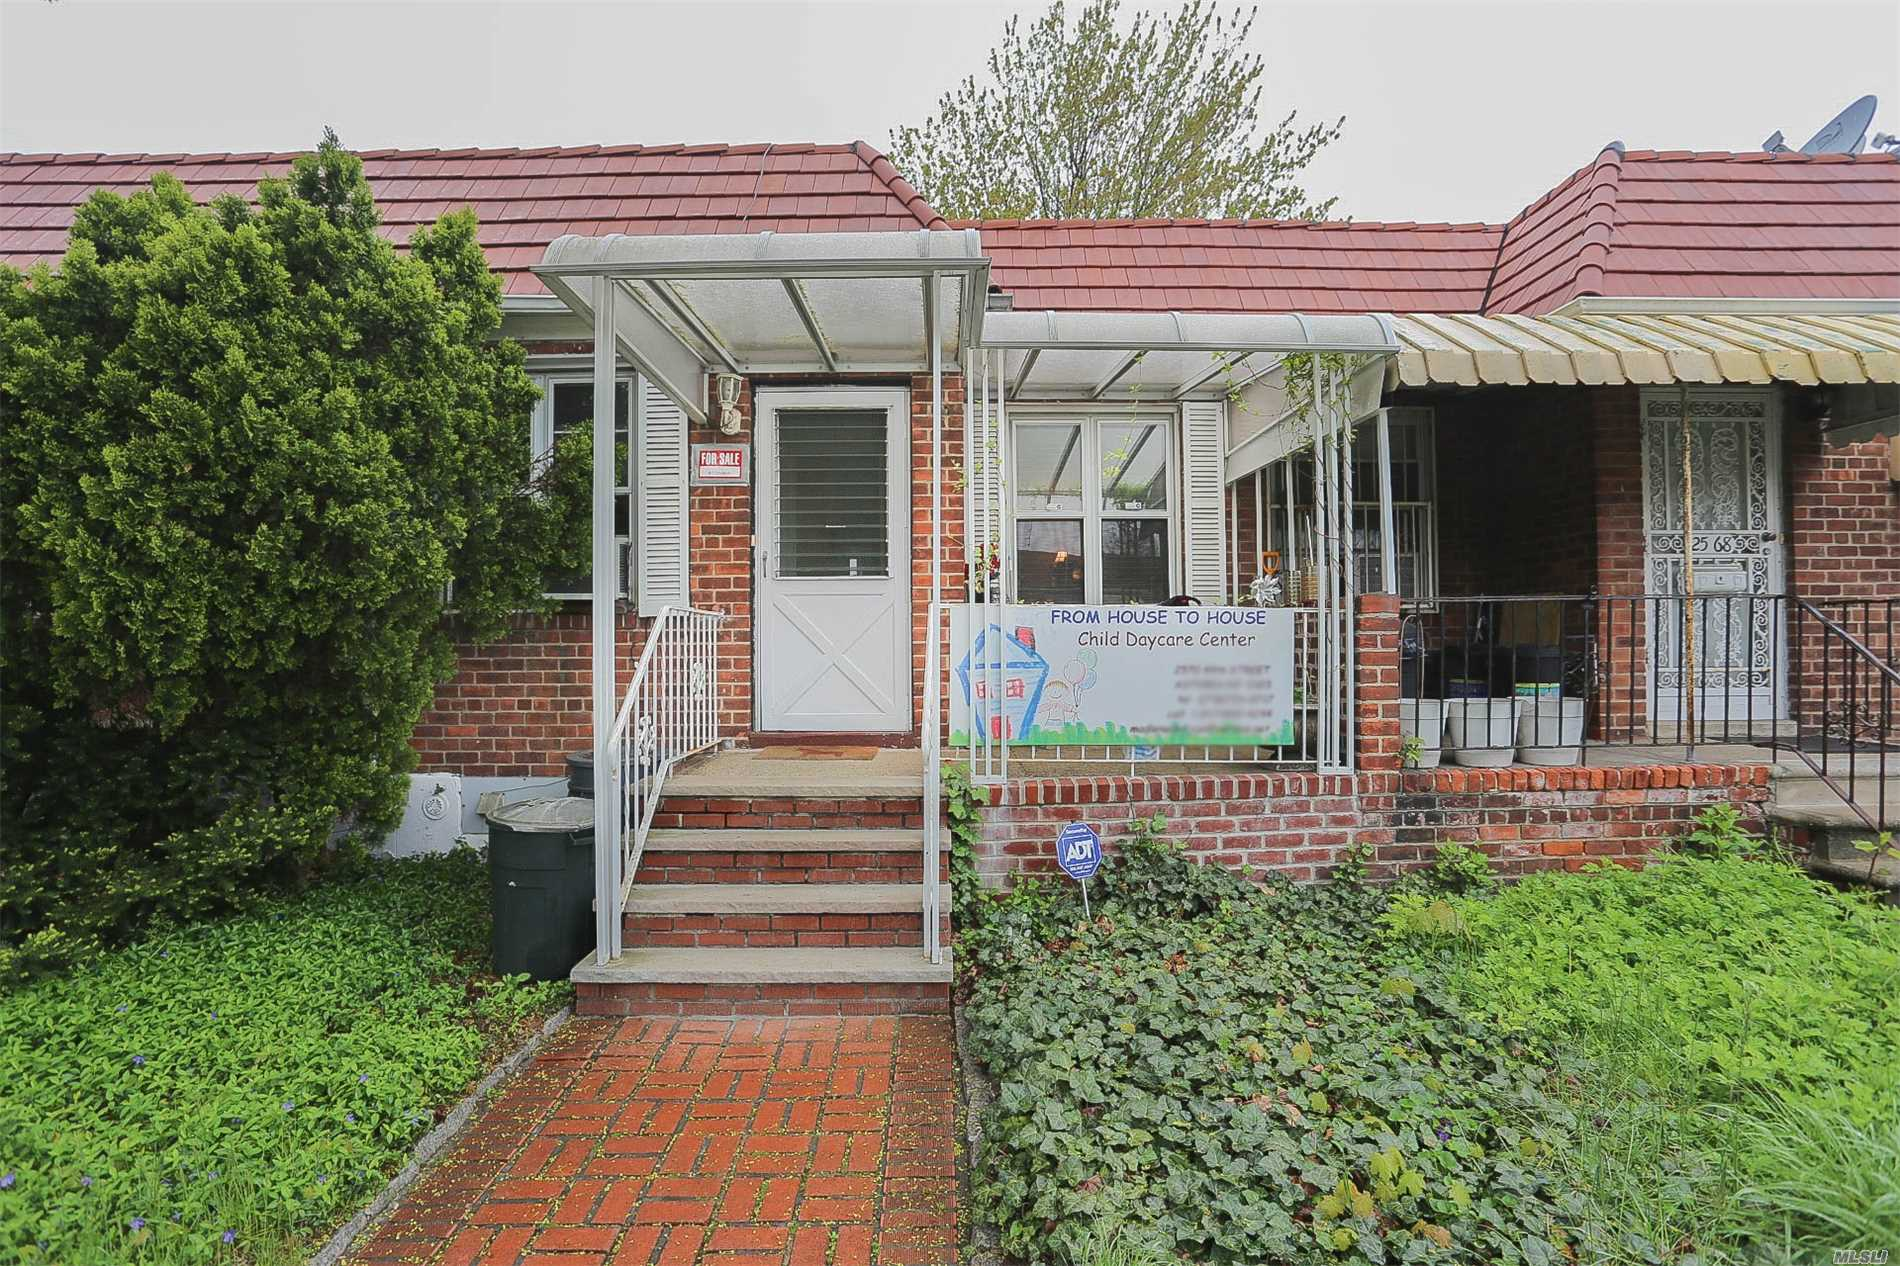 Lovely all brick ranch home with full above grade basement in Astoria, Queens. Great starter home or perfect for downsizing. As per GeoData (Lot size: 20 x 100, Bldg size: 20 x 41, Gross Living Area: 1, 584 sq ft). Home feats 2 full size bedrms (one with patio & backyard access), 2 full bths, renovated kitchen with shaker cabinets, granite countertops & stainless steel appliances; Open concept kitchen, hardwood flrs, full finished bsmnt with washer/dryer, recreation rm, full bth, backyard access